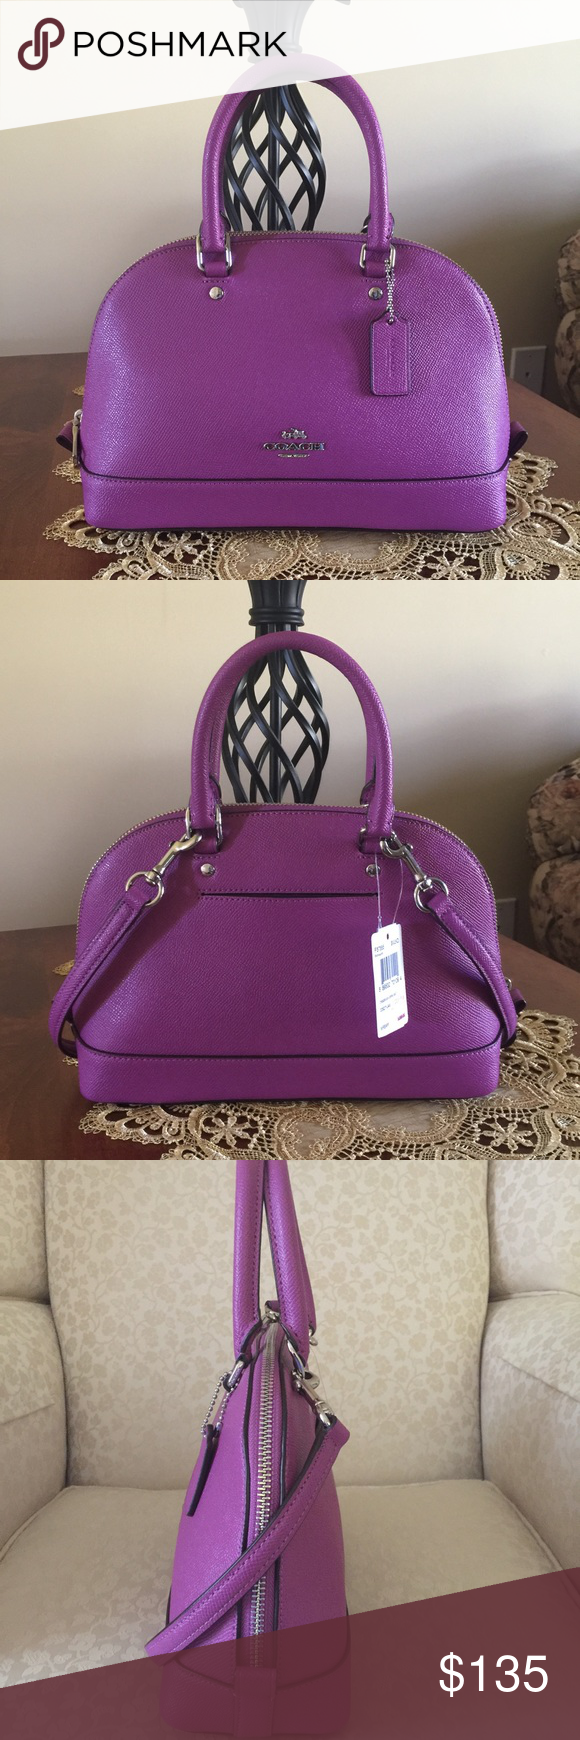 """💐Coach Mini Sierra Satchel💐 This adorable purse features an inside zip pocket and multi function pocket, zip top closure, silver tone hardware, fabric lining, handles with 3.5"""" drop, longer strap with 21.5"""" drop for shoulder or cross body wear, and an outside back pocket. Coach Bags Satchels"""